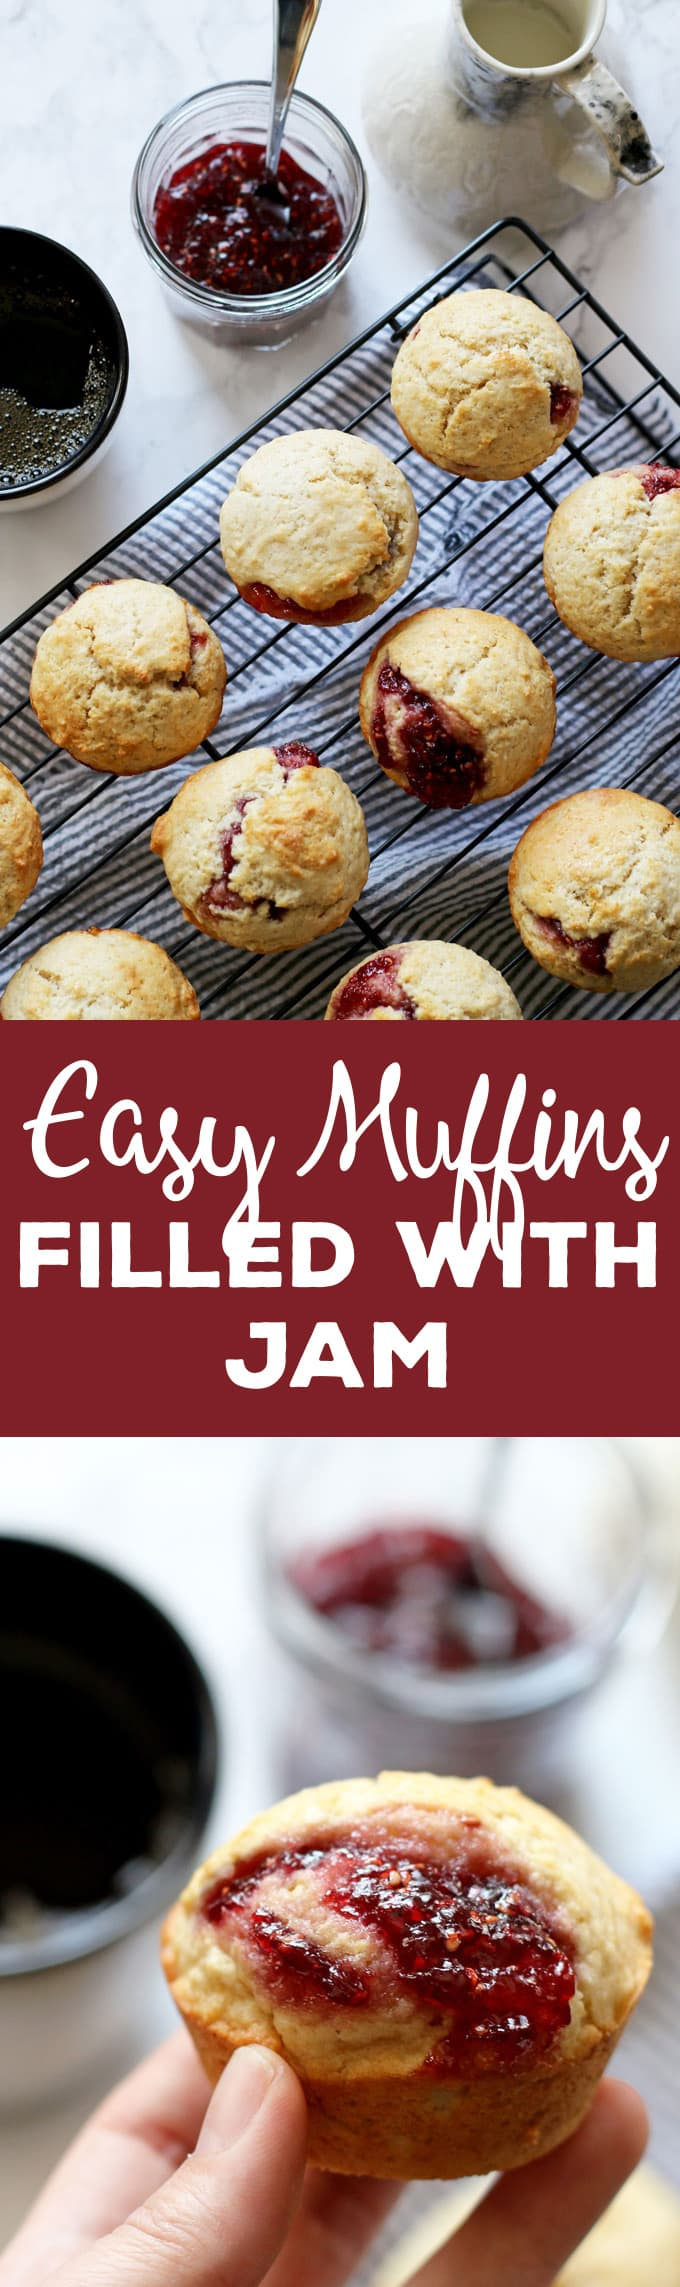 These easy muffins filled with jam are the perfect quick breakfast! I like to eat one or two in the morning with a piping hot cup of coffee. It's such an easy recipe to make that you can make a batch when you wake up. Also, they are perfect for farmer's market preserves and jams! | honeyandbirch.com